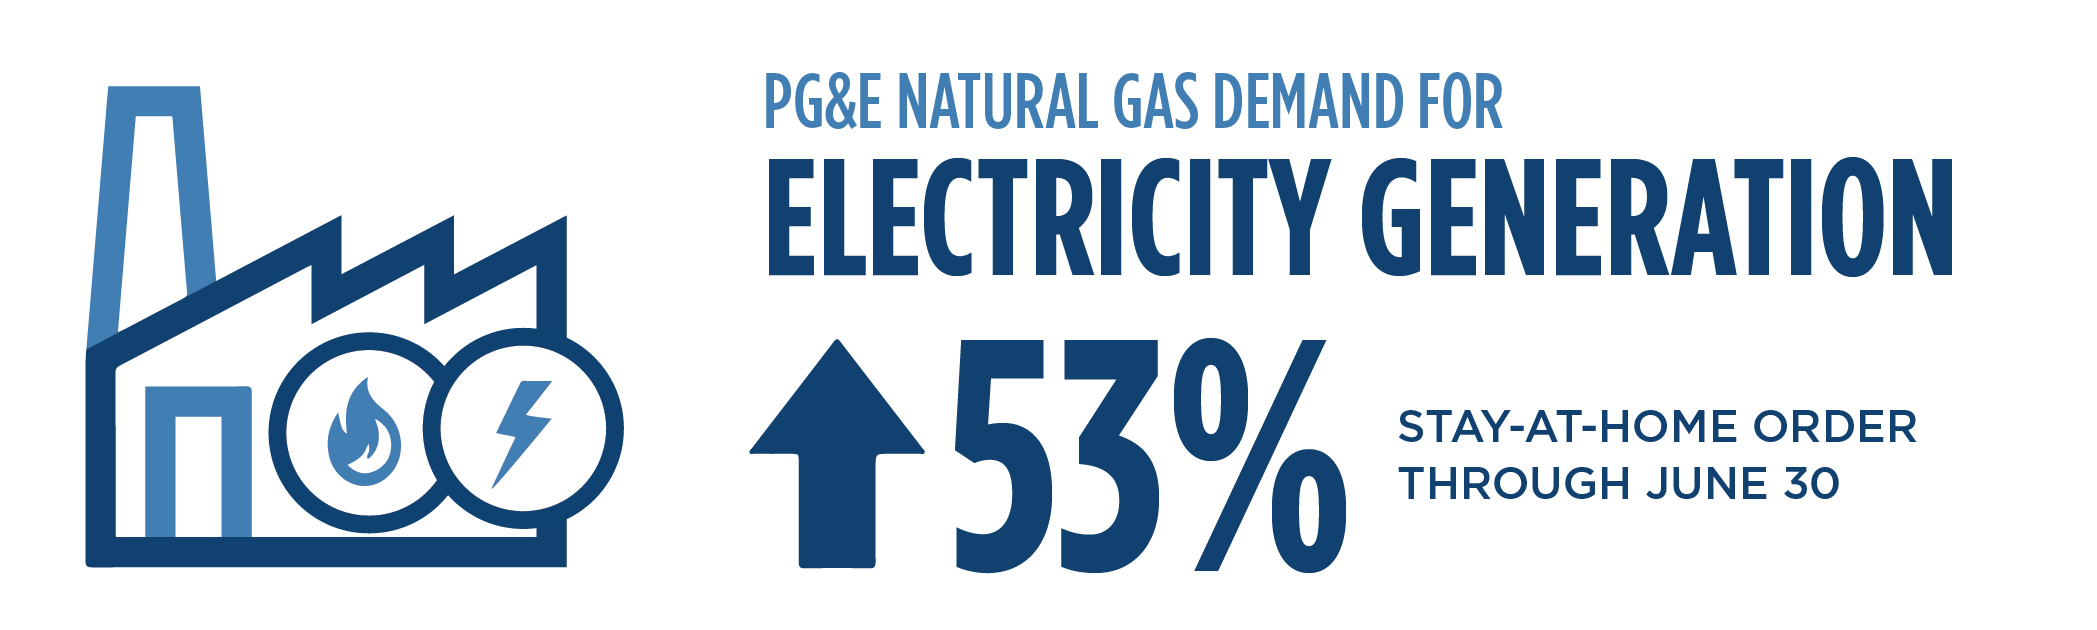 Infographic showing the increase of natural gas demand for electric generation by 53% due to hotter weather and lower hydroelectric resources during the stay-at-home order through June.